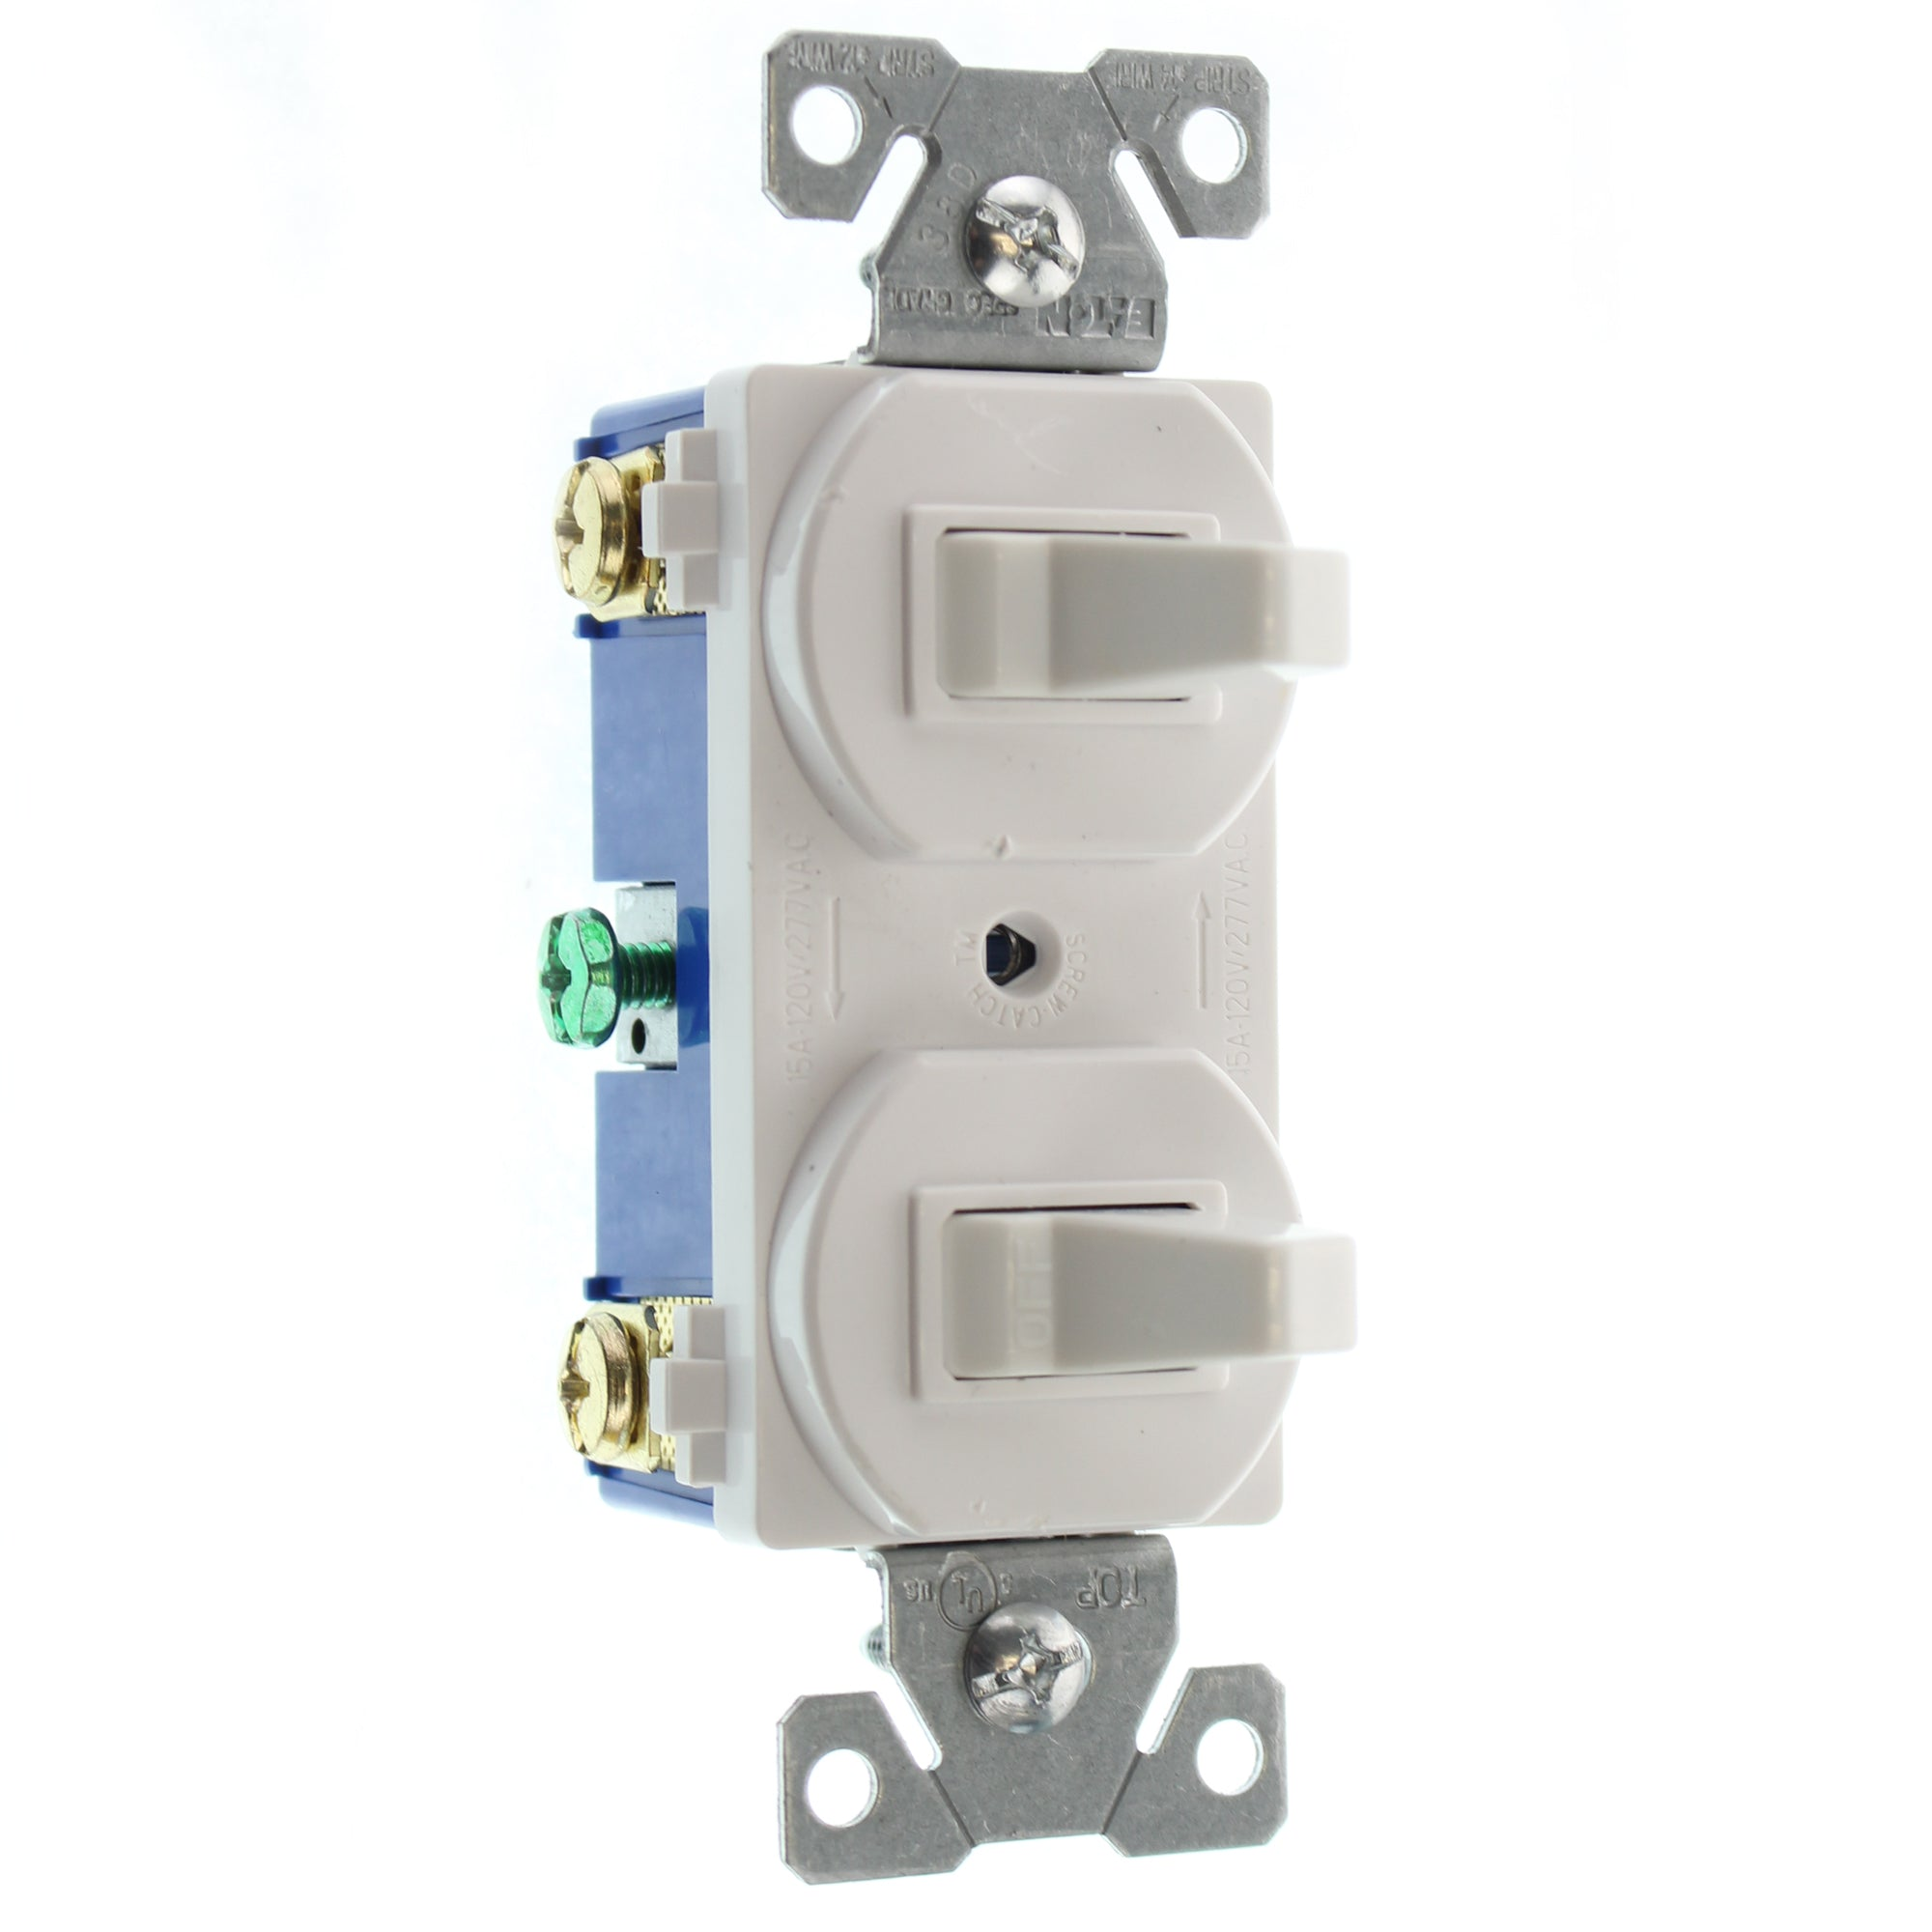 HUBBELL RC103WZ DOUBLE TOGGLE SWITCH, 1-POLE & 3-WAY, 15A, 120/277V ...